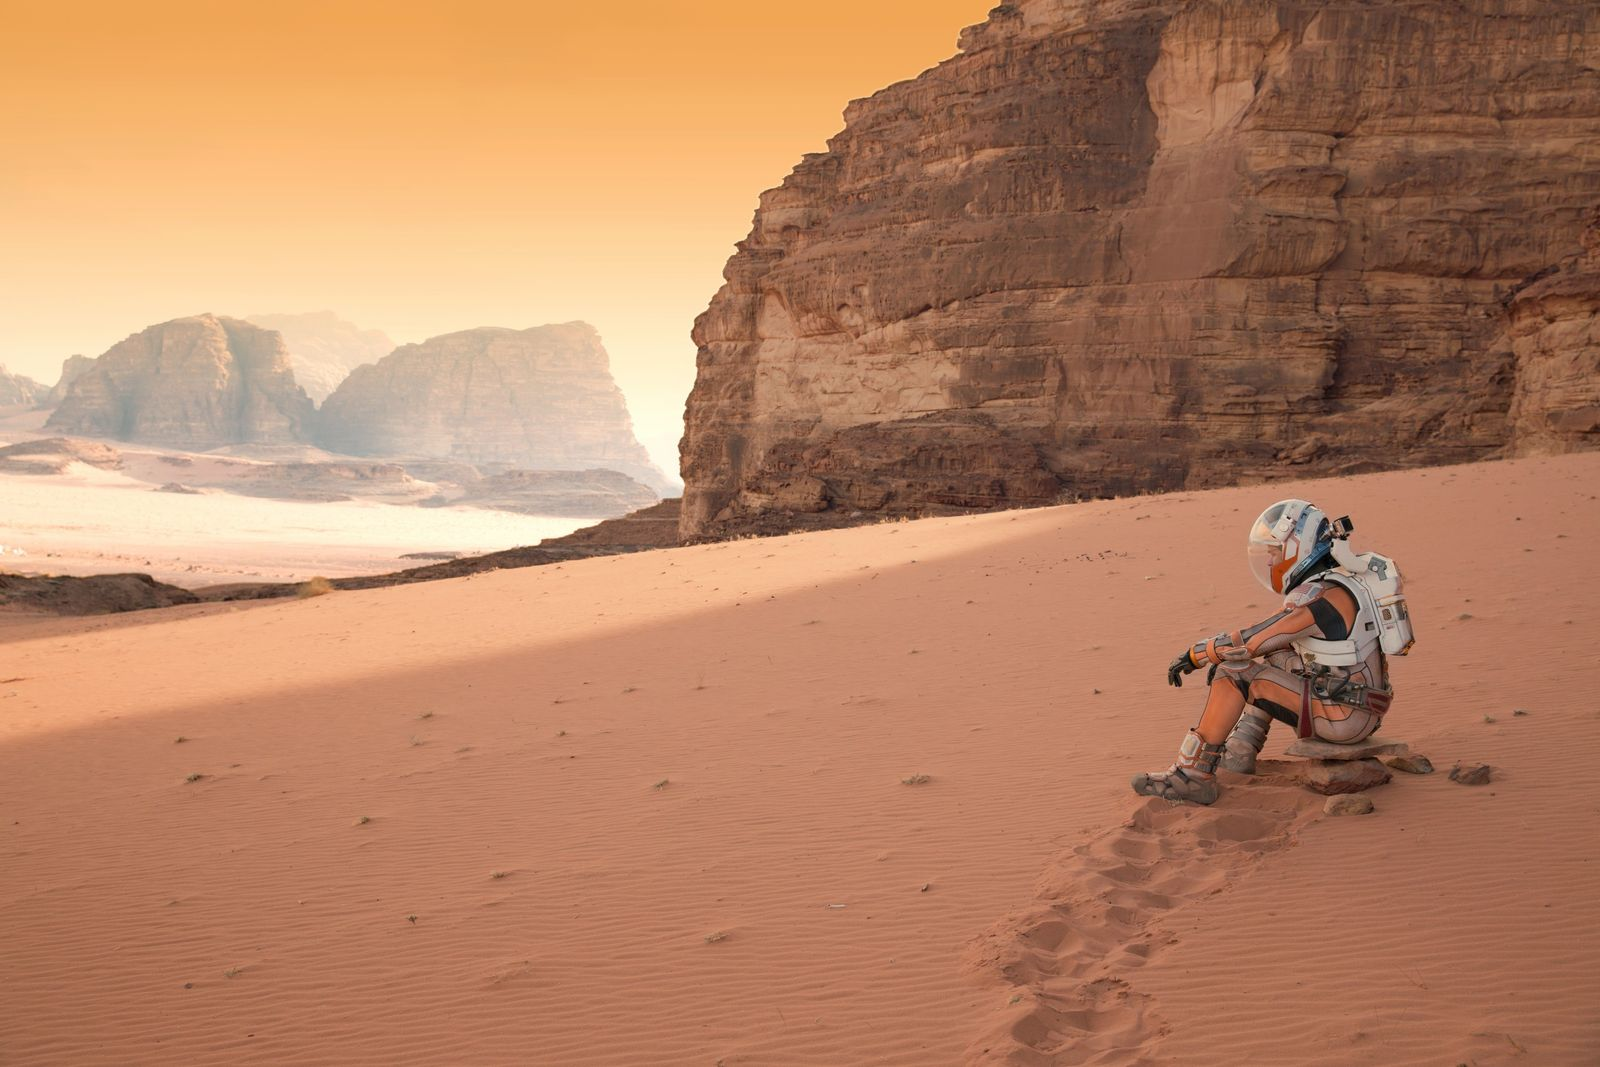 The time delay on a call between a voyage from Earth to Mars would be 20 ...